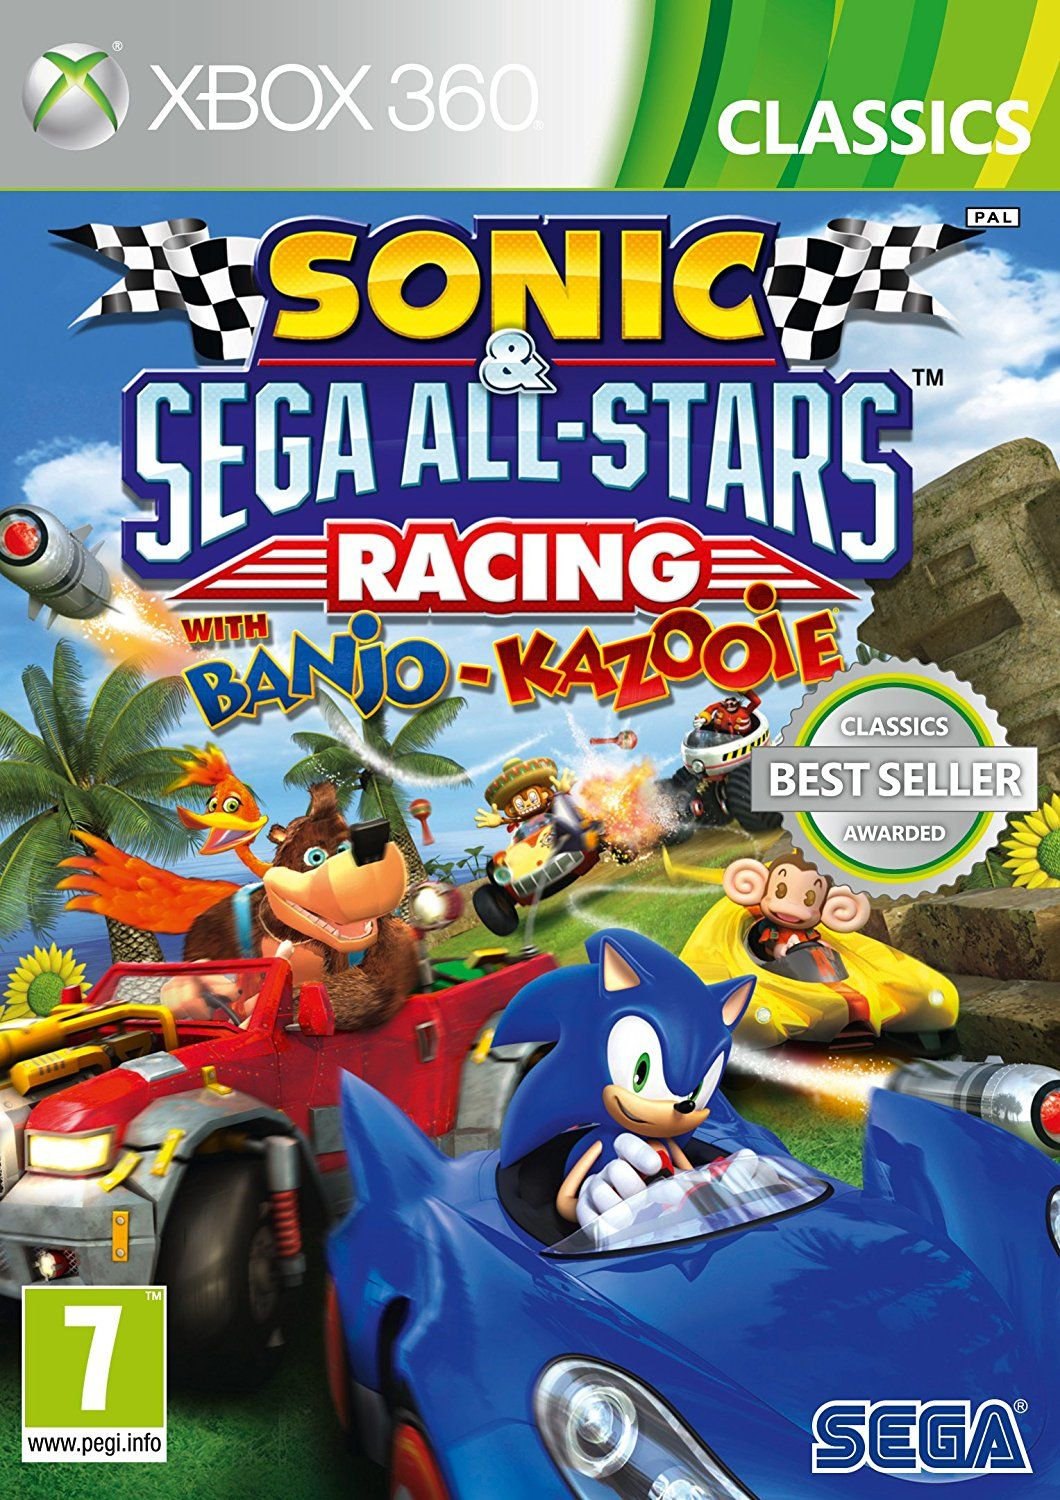 Image result for xbox 360 games mario